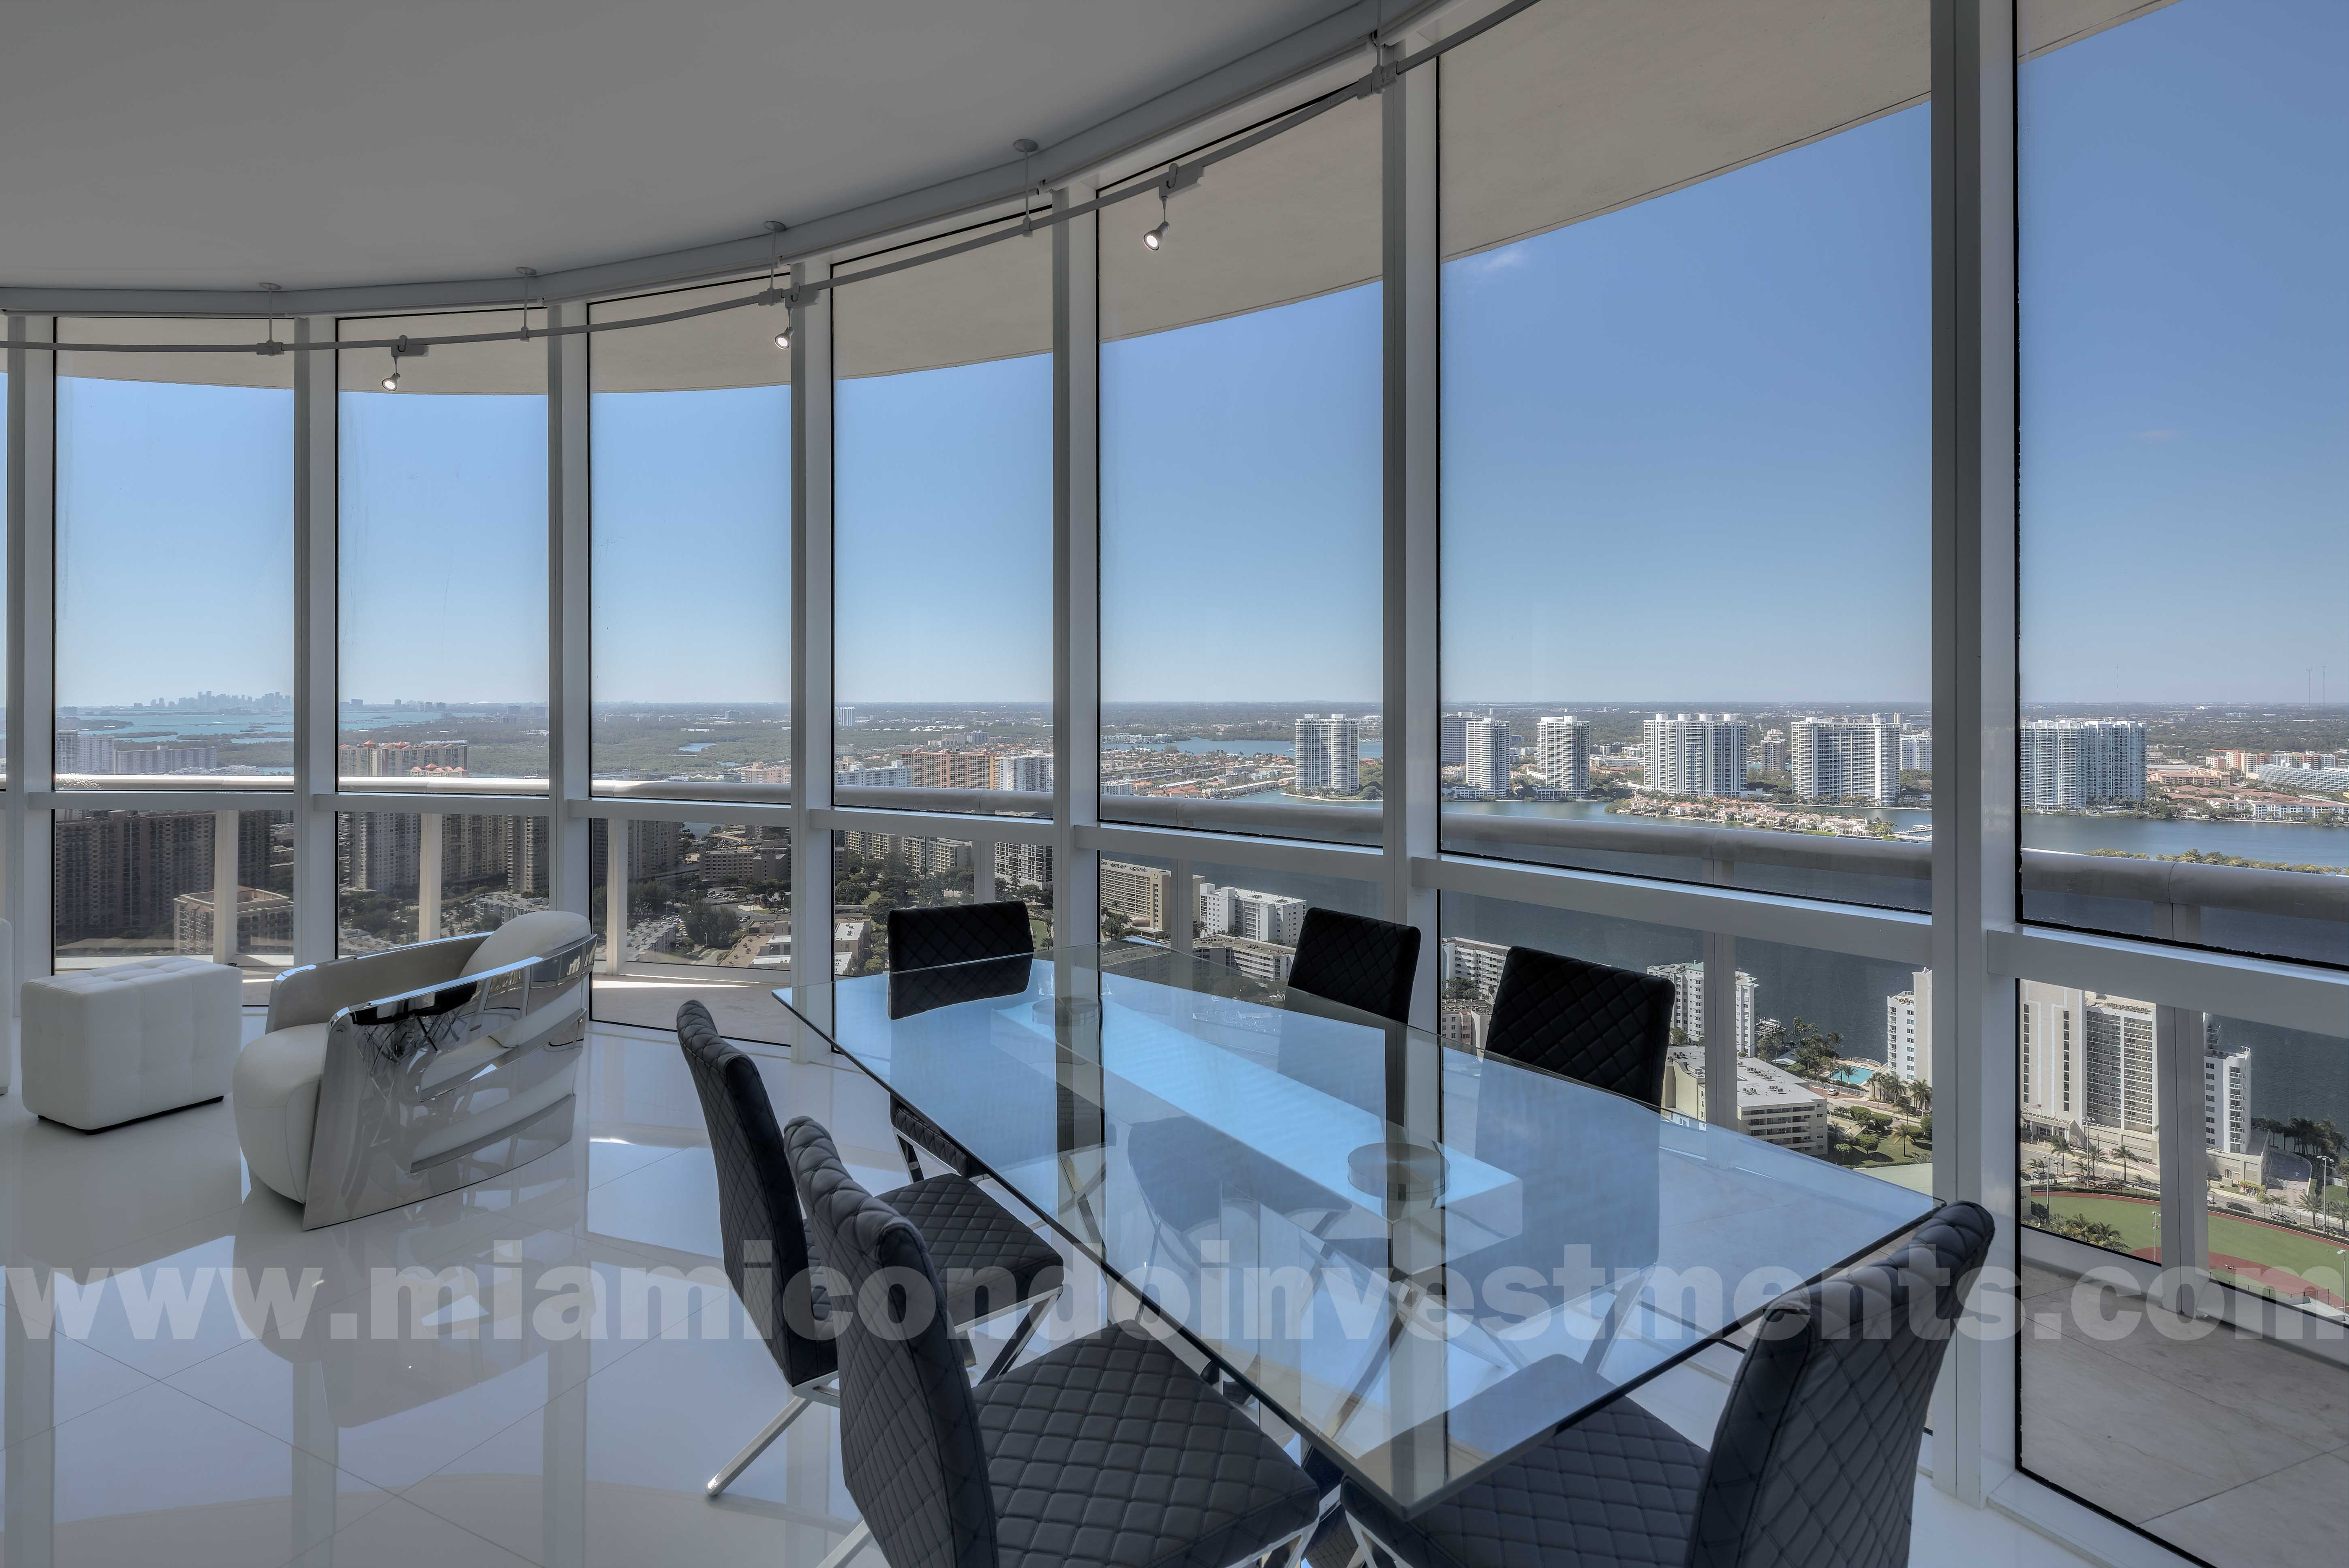 view of intracoastal waterway and Miami skyline from dining table